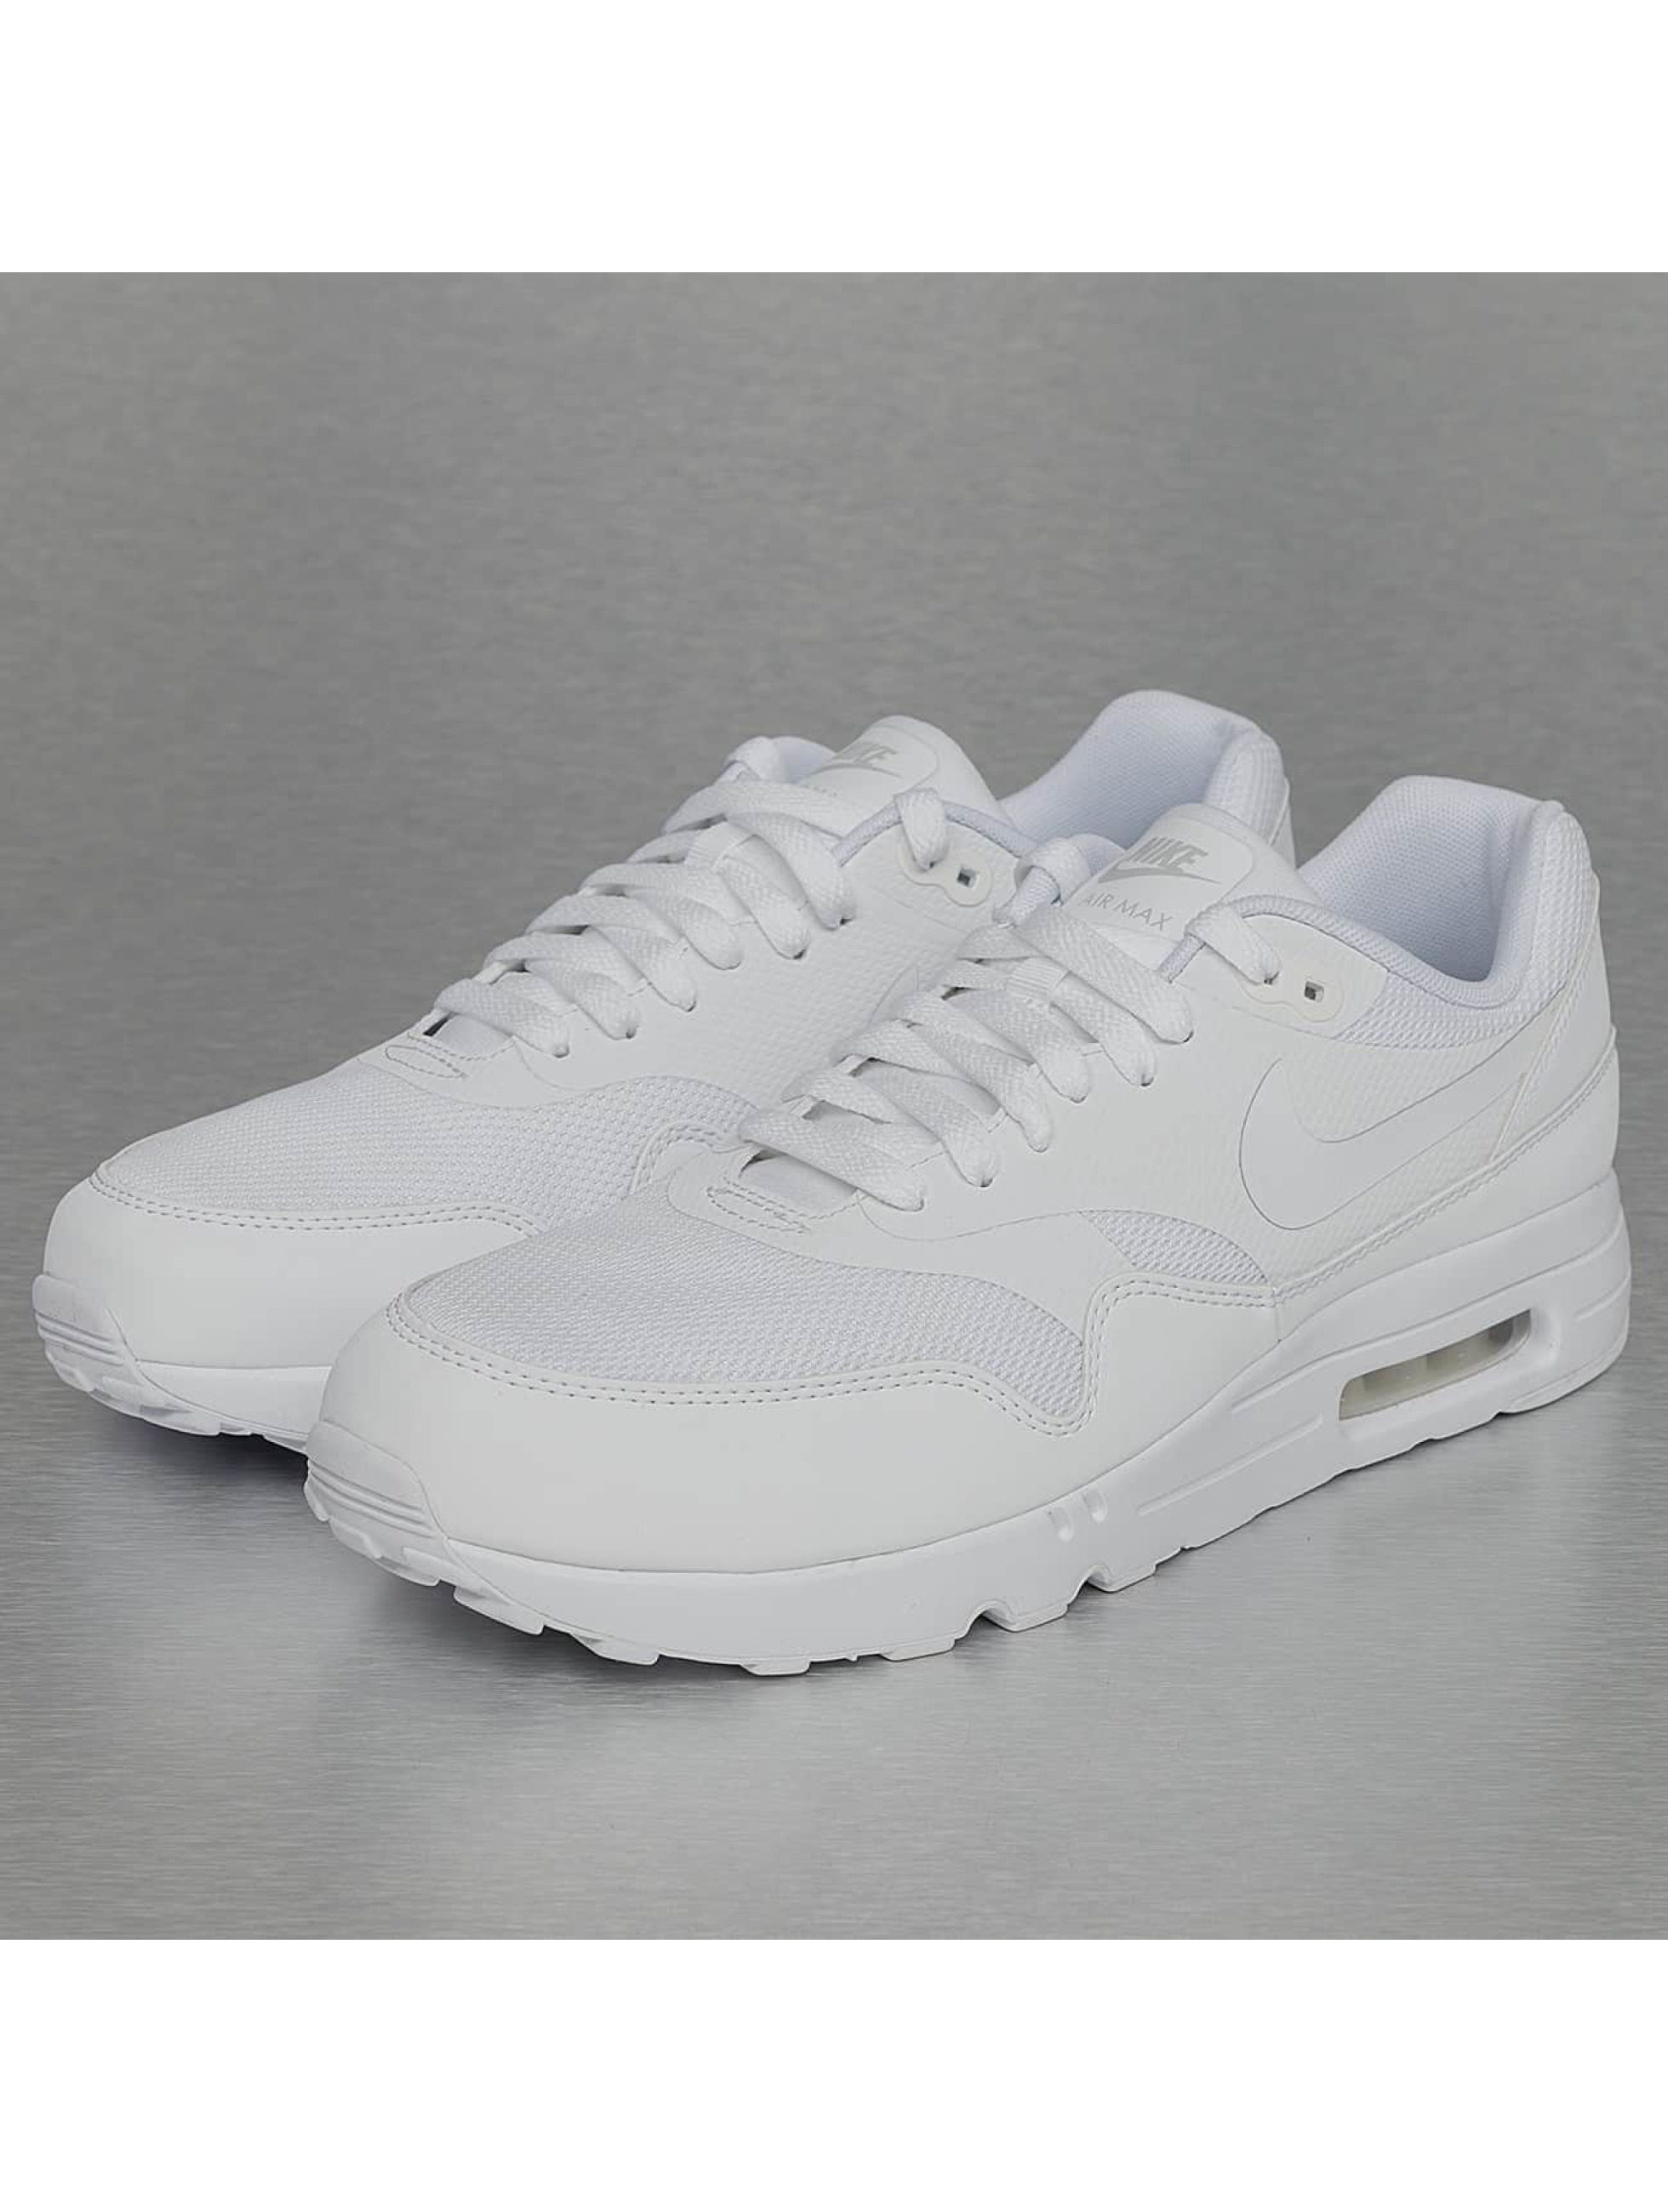 Nike Männer Sneaker Air Max 1 Ultra 2.0 Essential in weiß